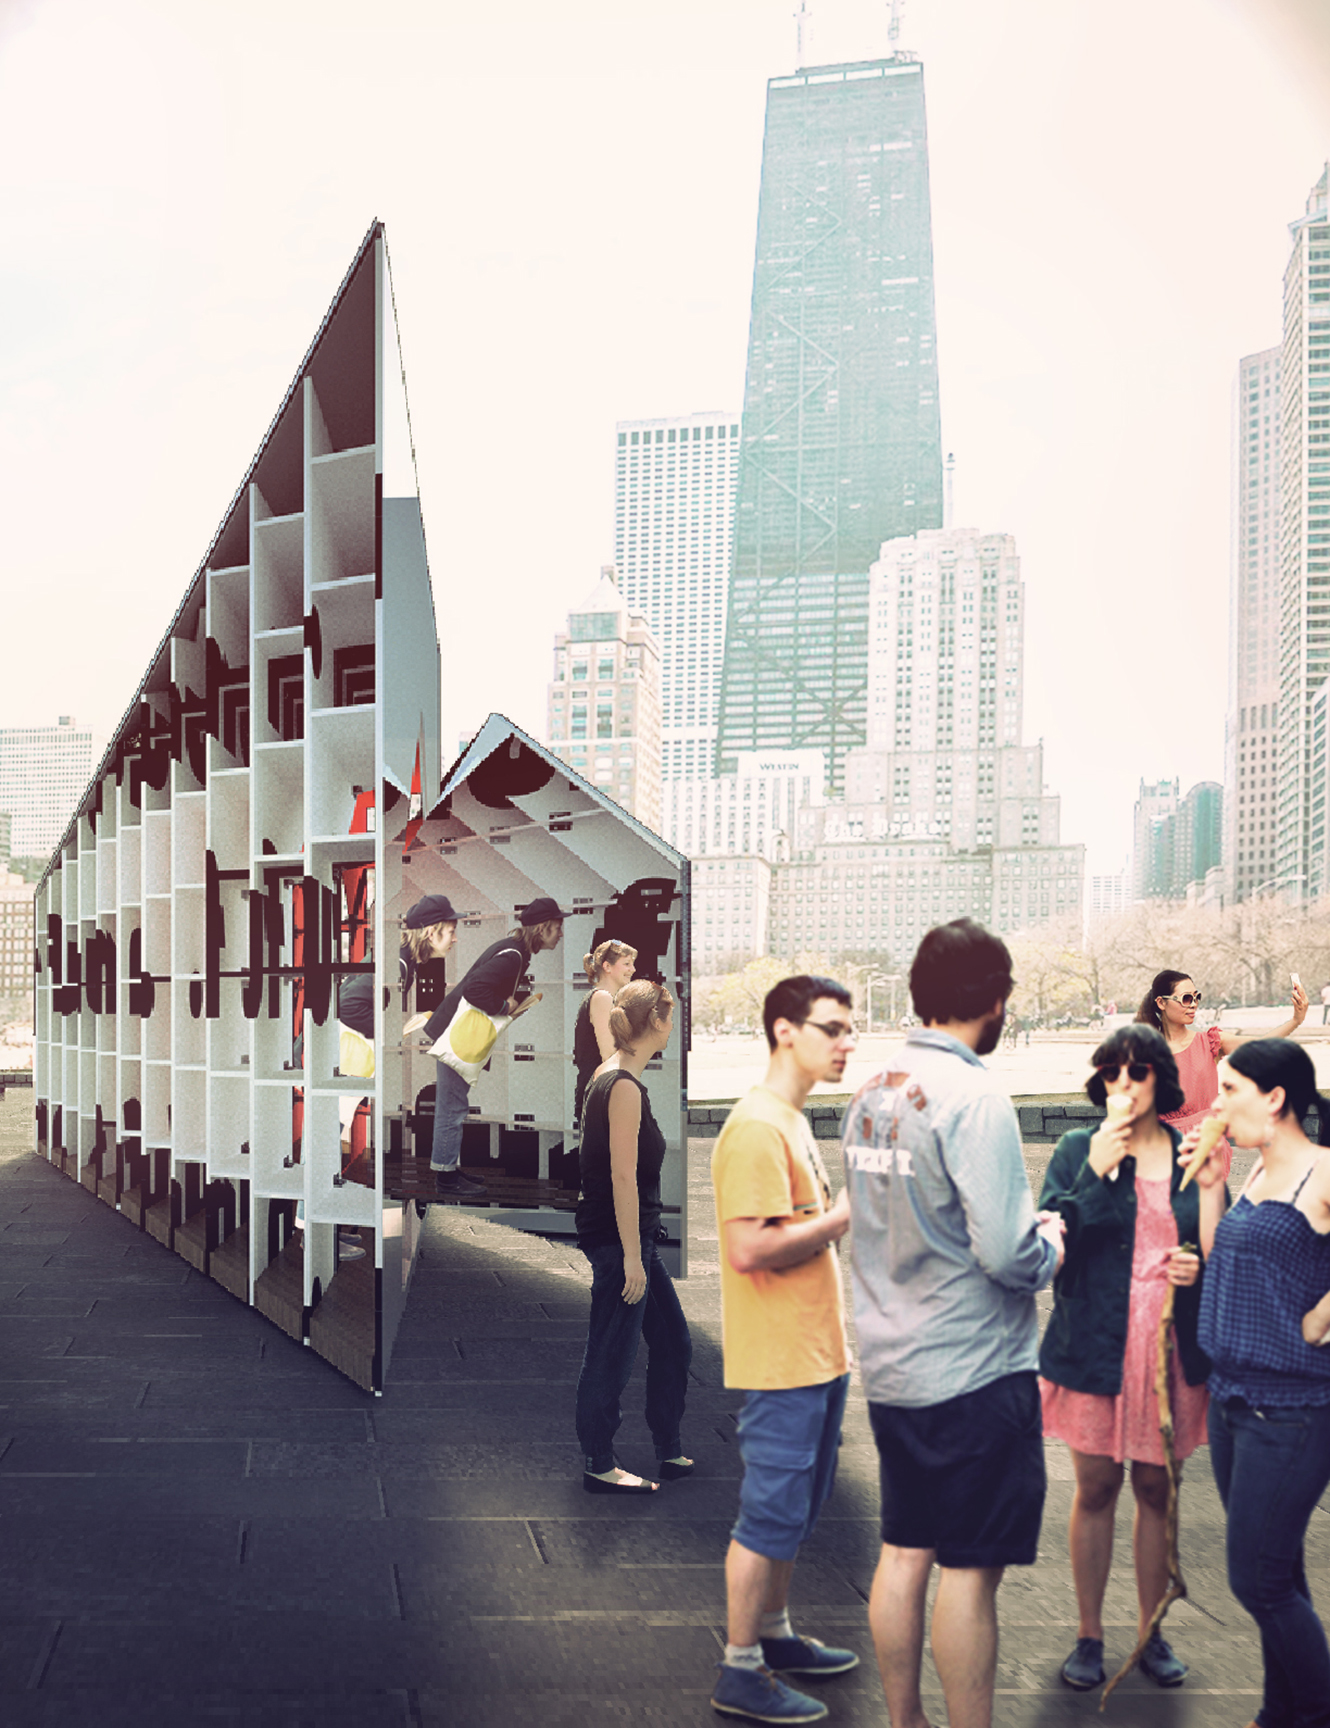 08 Chicago Biennial Kiosk Competition - Chen + Suchart Studio.jpg